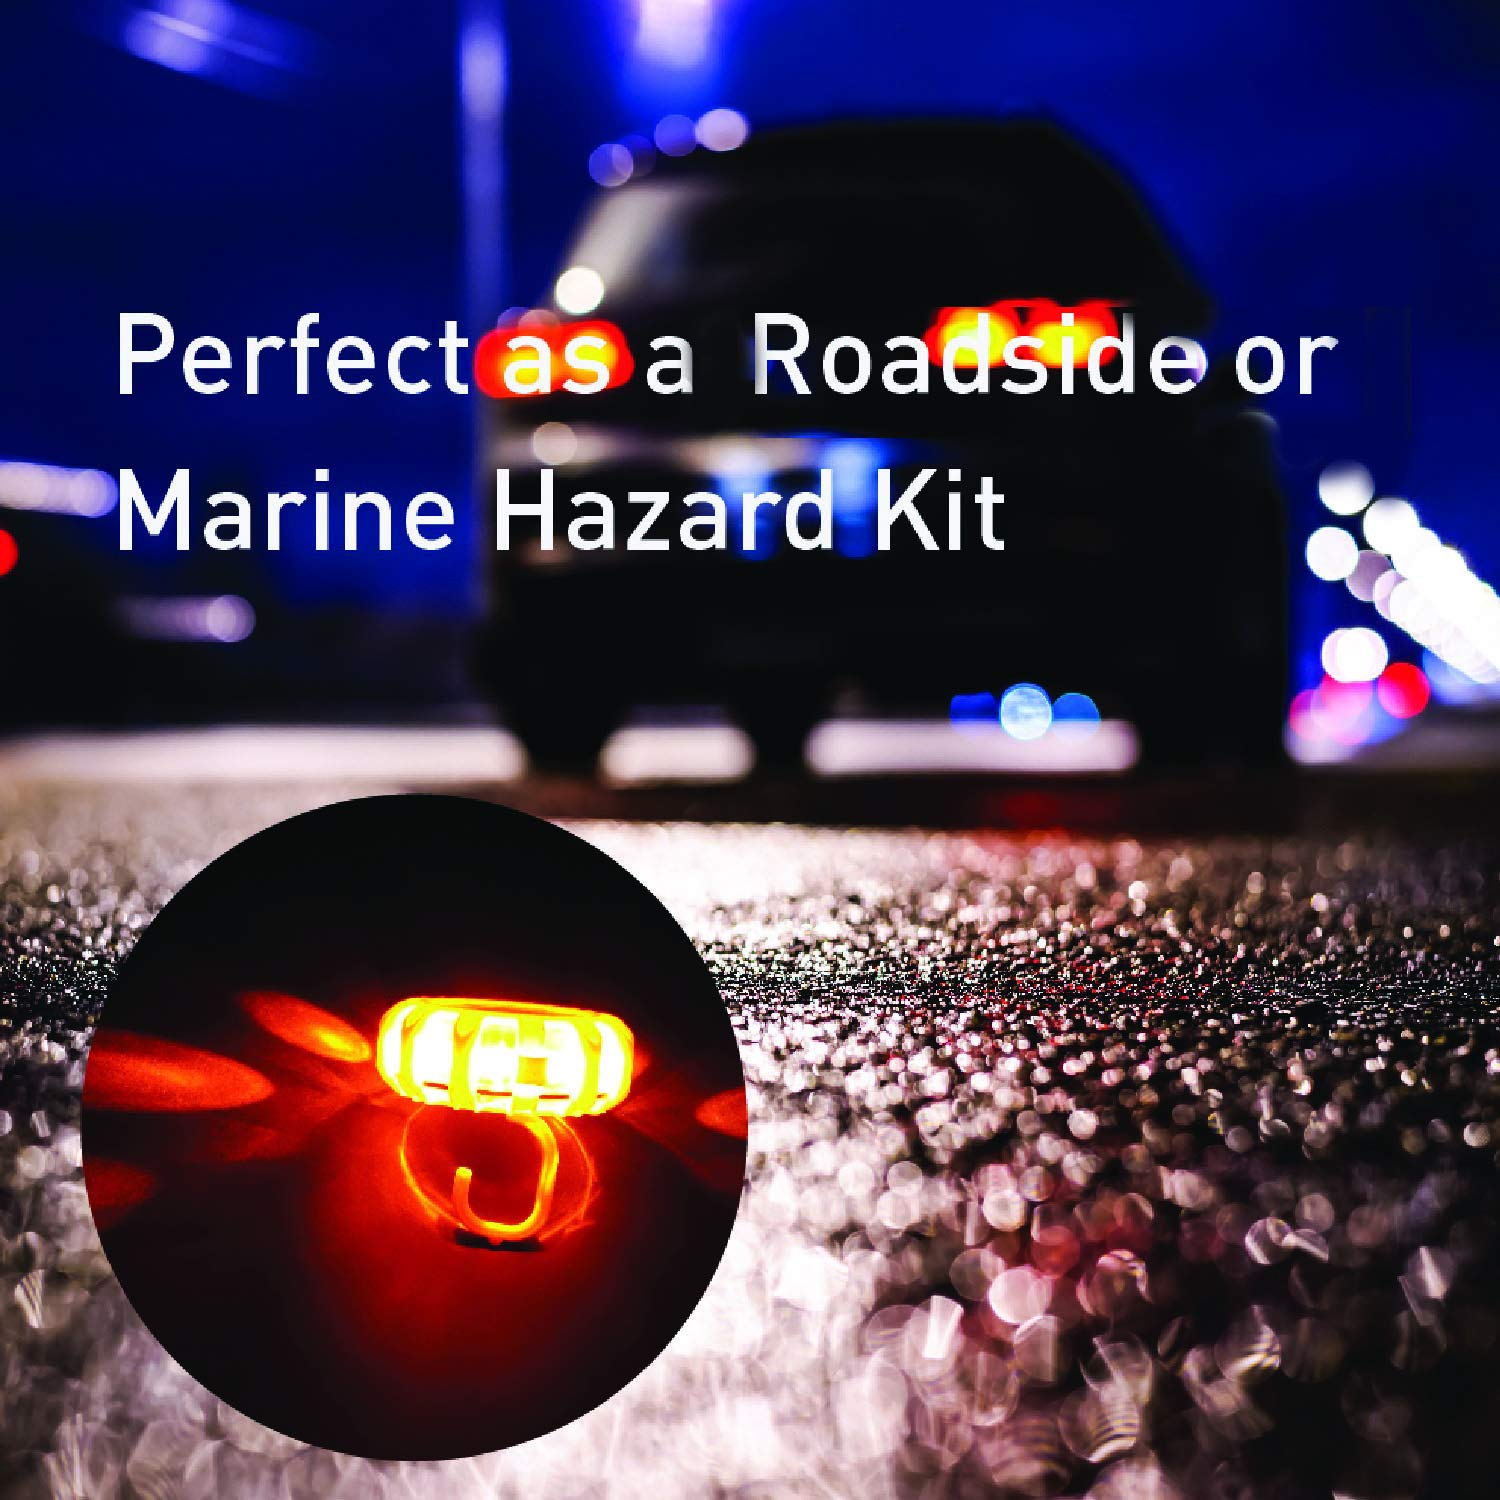 Securityman LED Road Flares with Safety Vest Bright Warning Beacon//Flashing Distress Light   Emergency Kit for Roadside /& Marine Boat Hazards 3 Pack Car /& Truck Magnetic Base DOT Approved